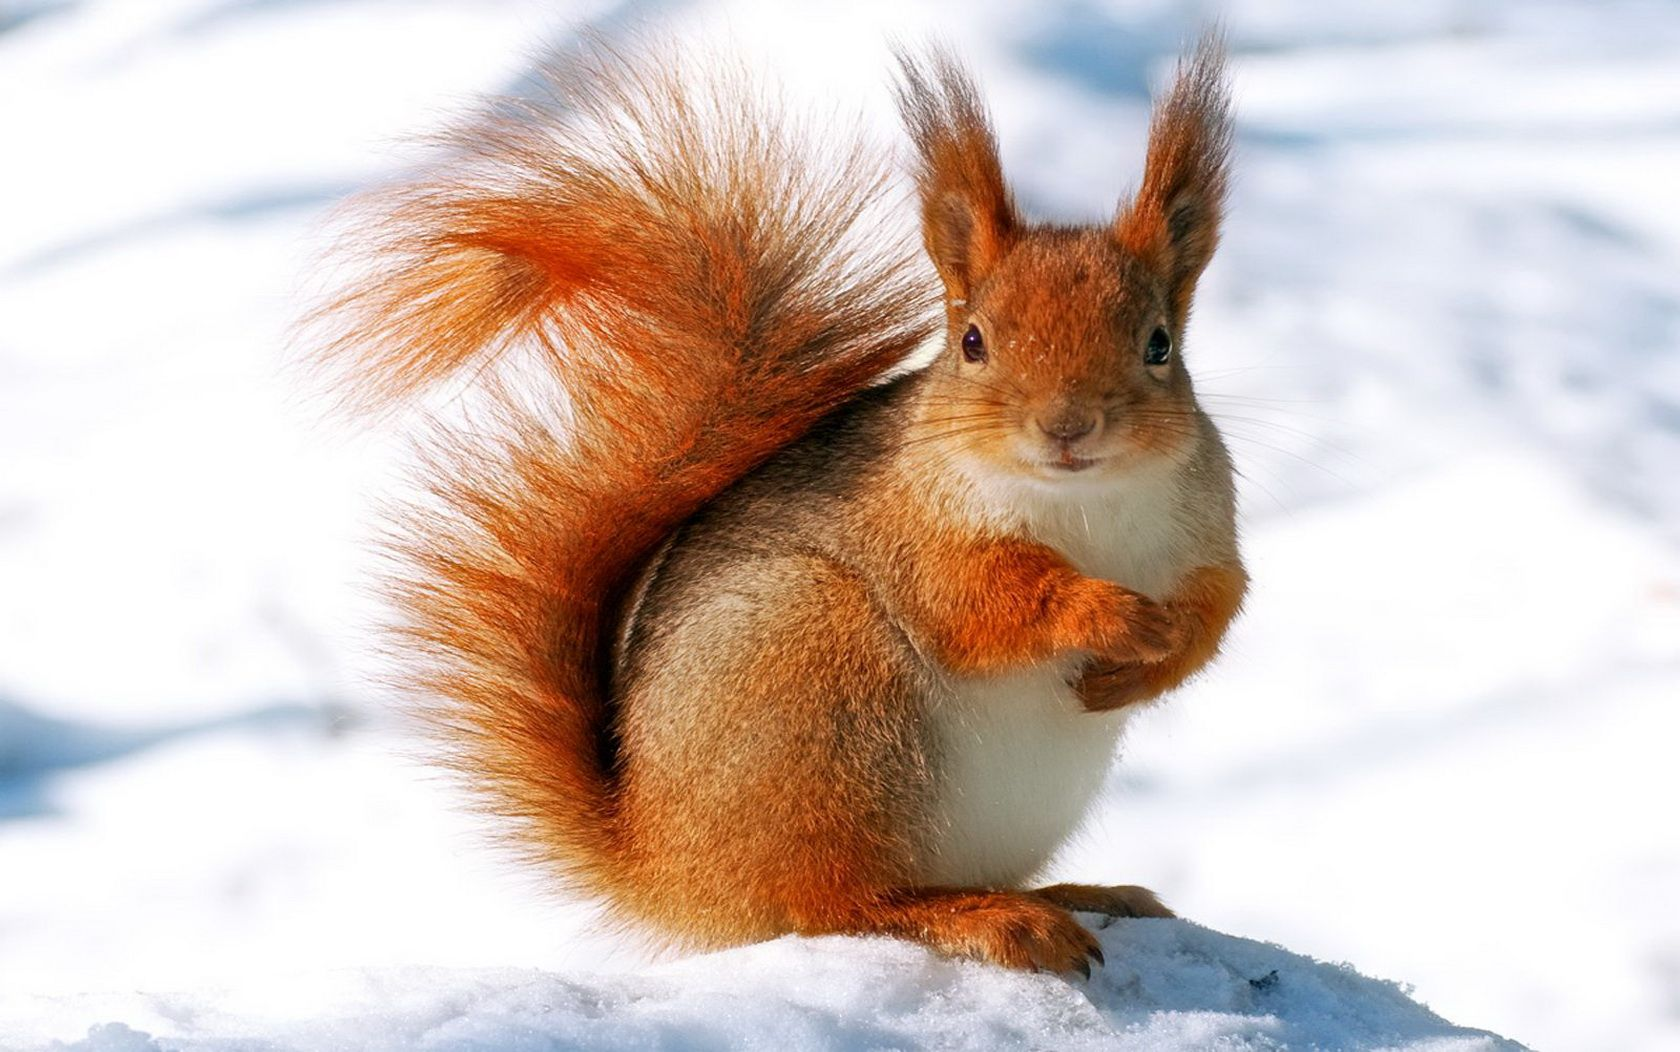 Winter animal image animals wallpapers pinterest - Free funny animal screensavers ...